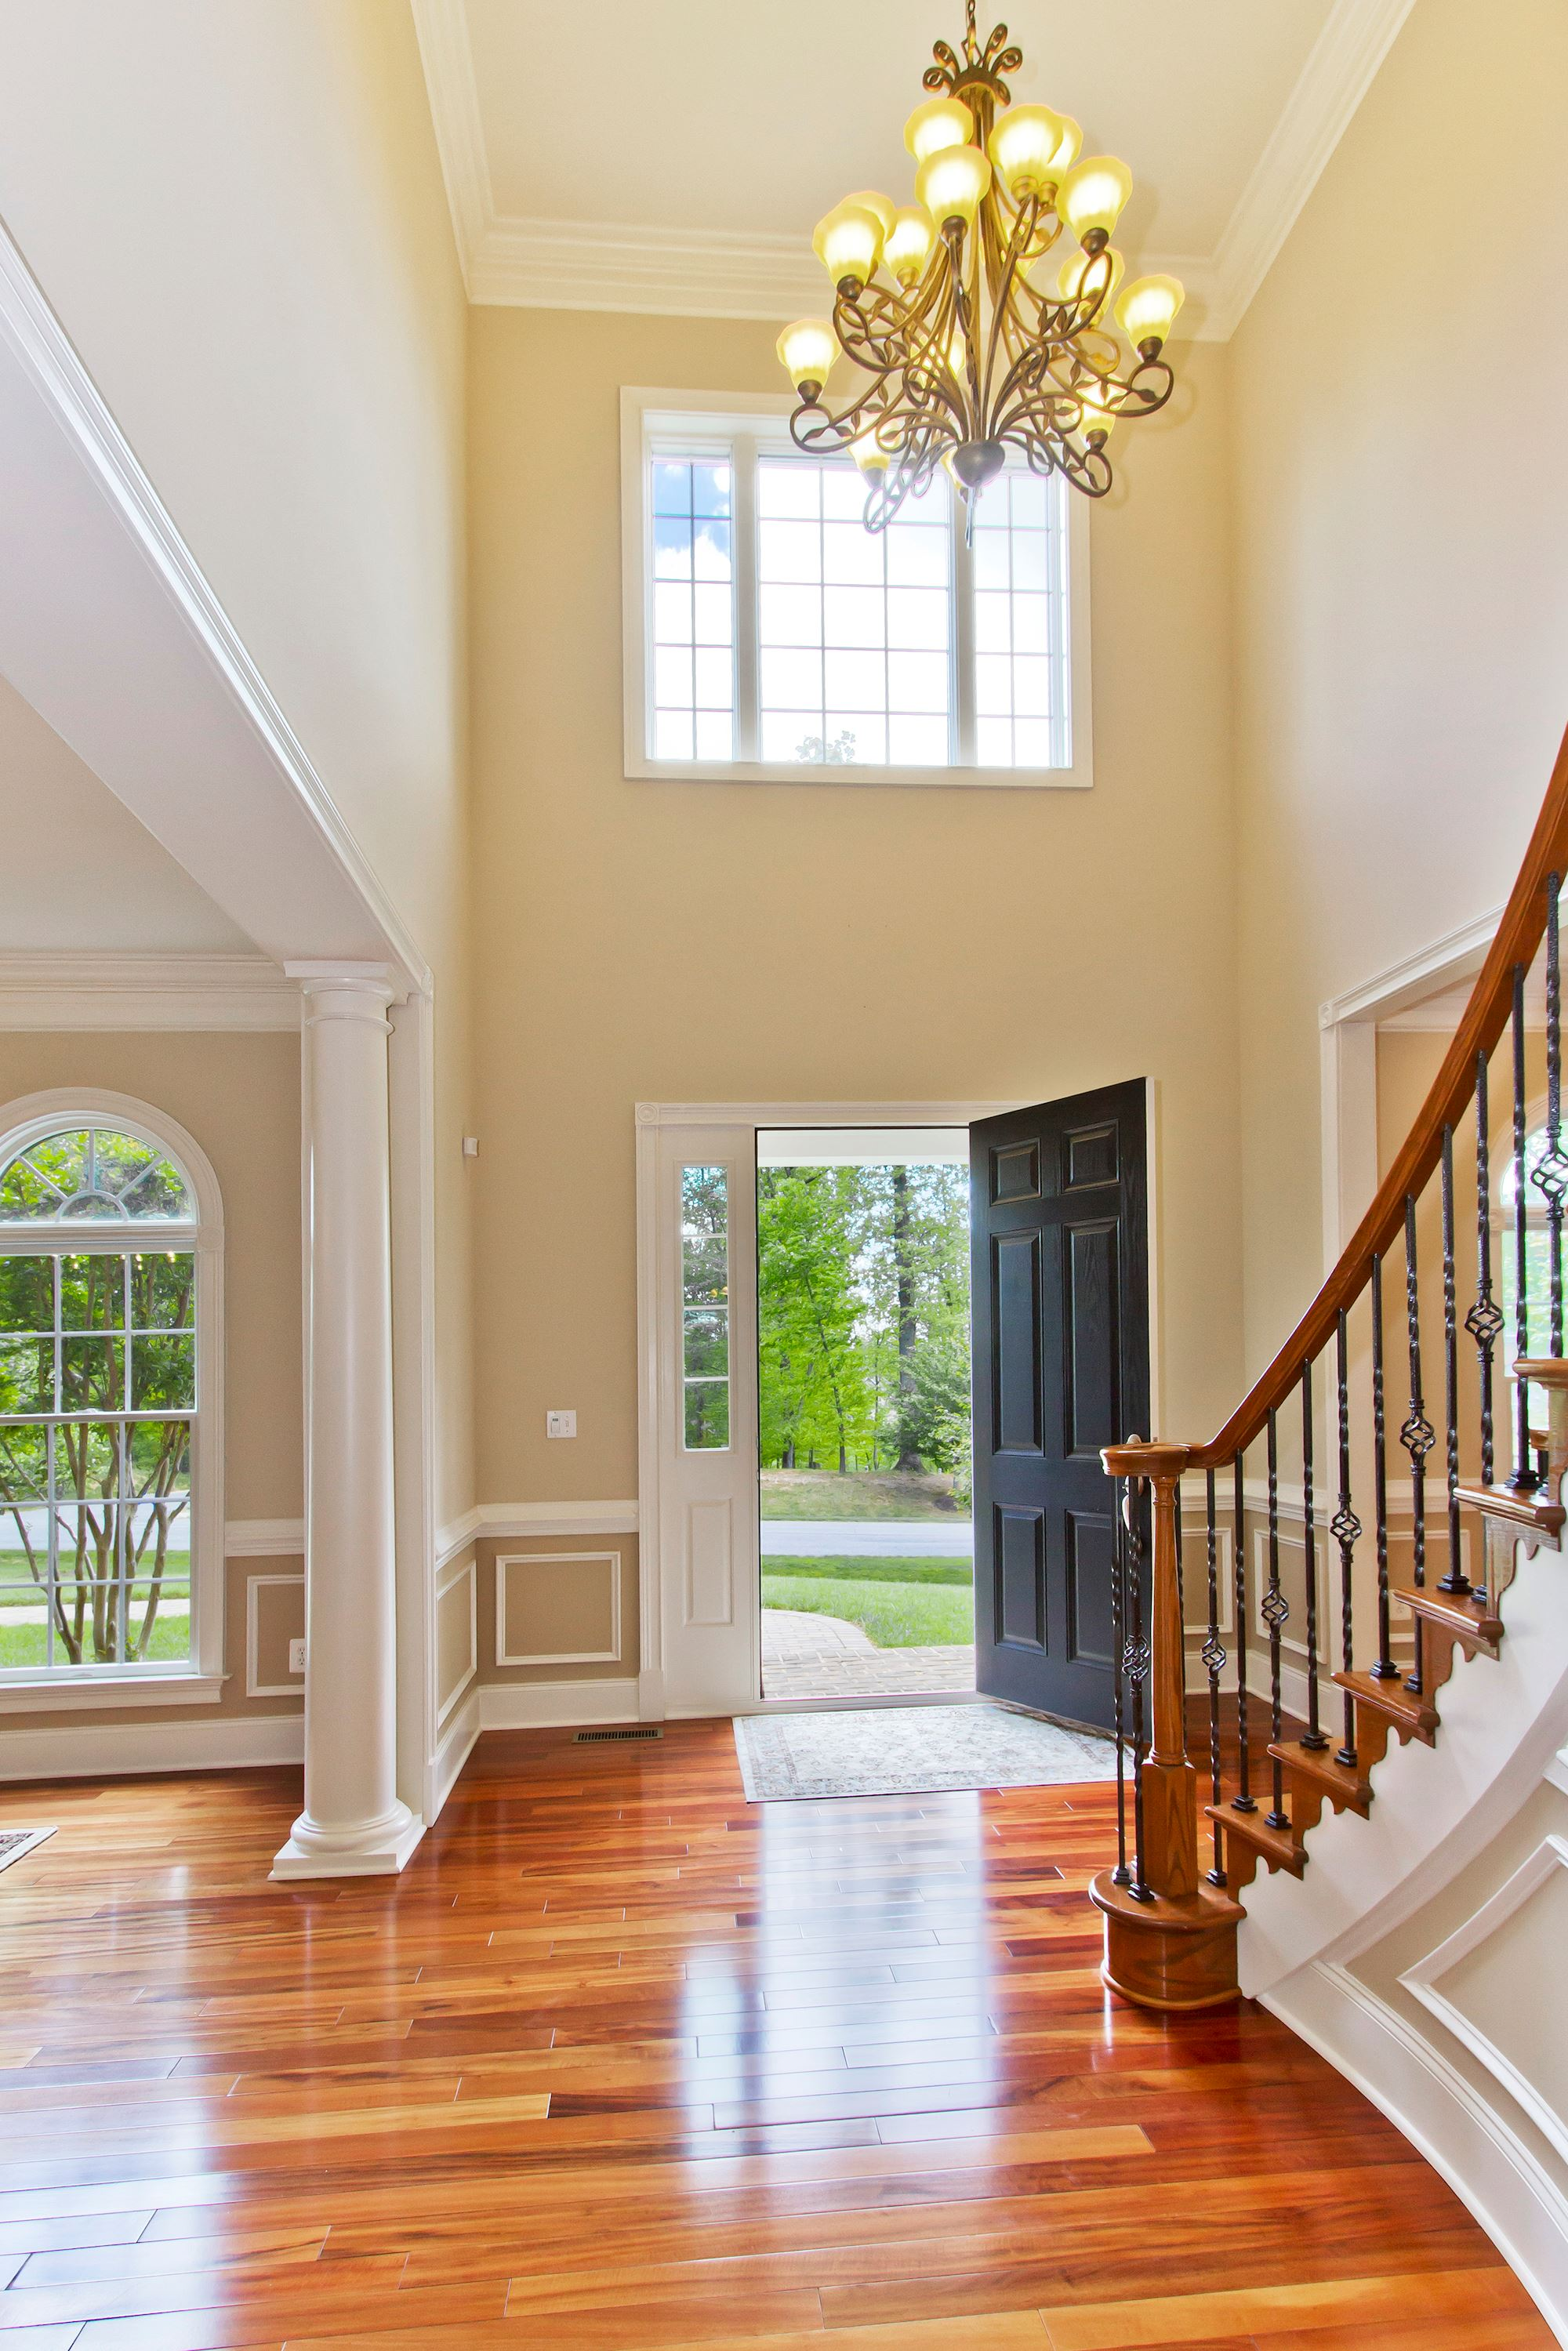 House Foyer Xl : Independence way ellicott city md